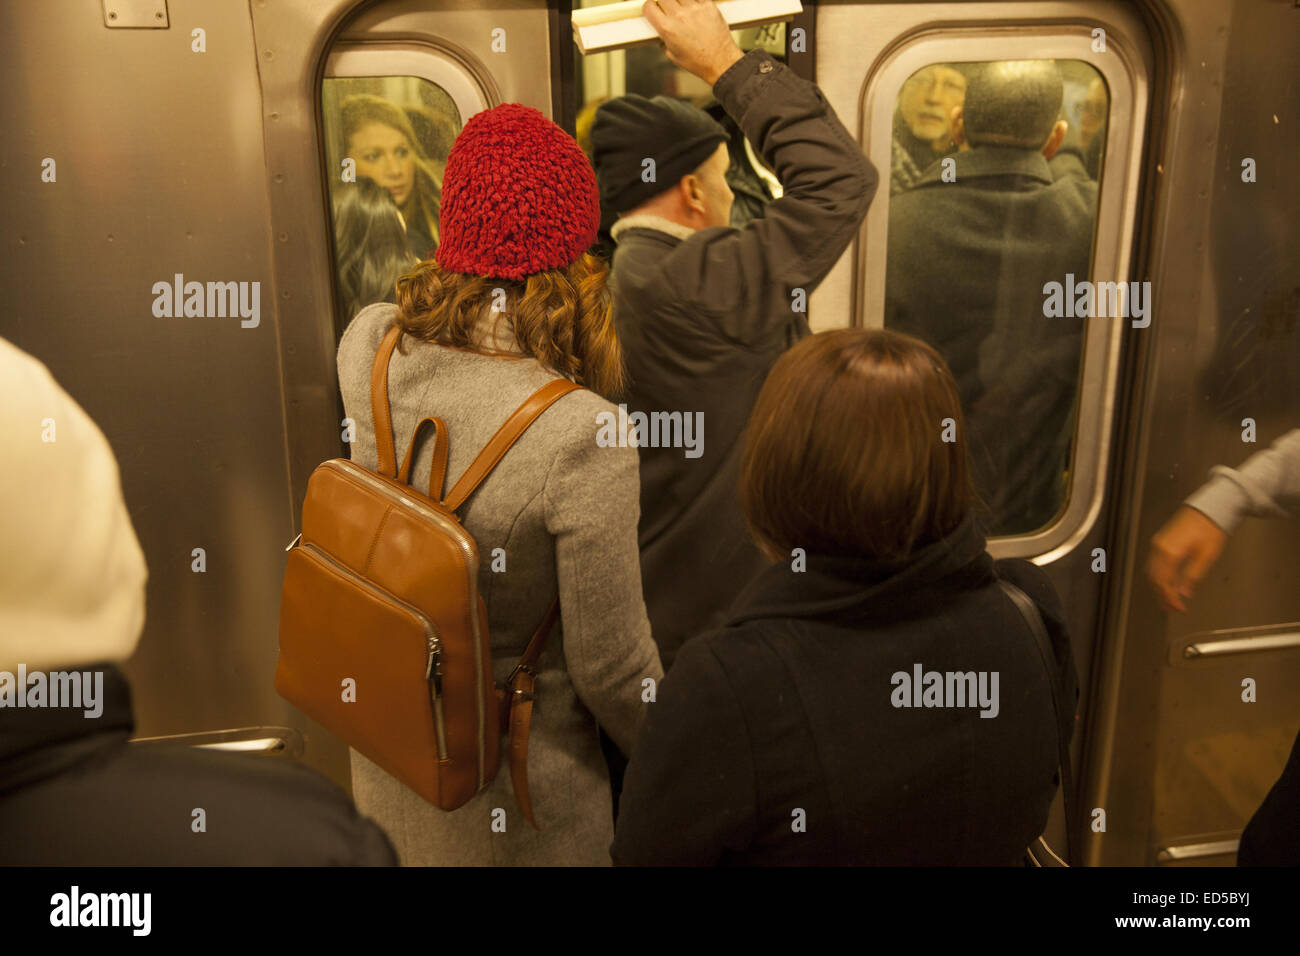 Man tries to squeeze into a subway car when the doors were closing at the Grand Central subway station in NYC. during - Stock Image